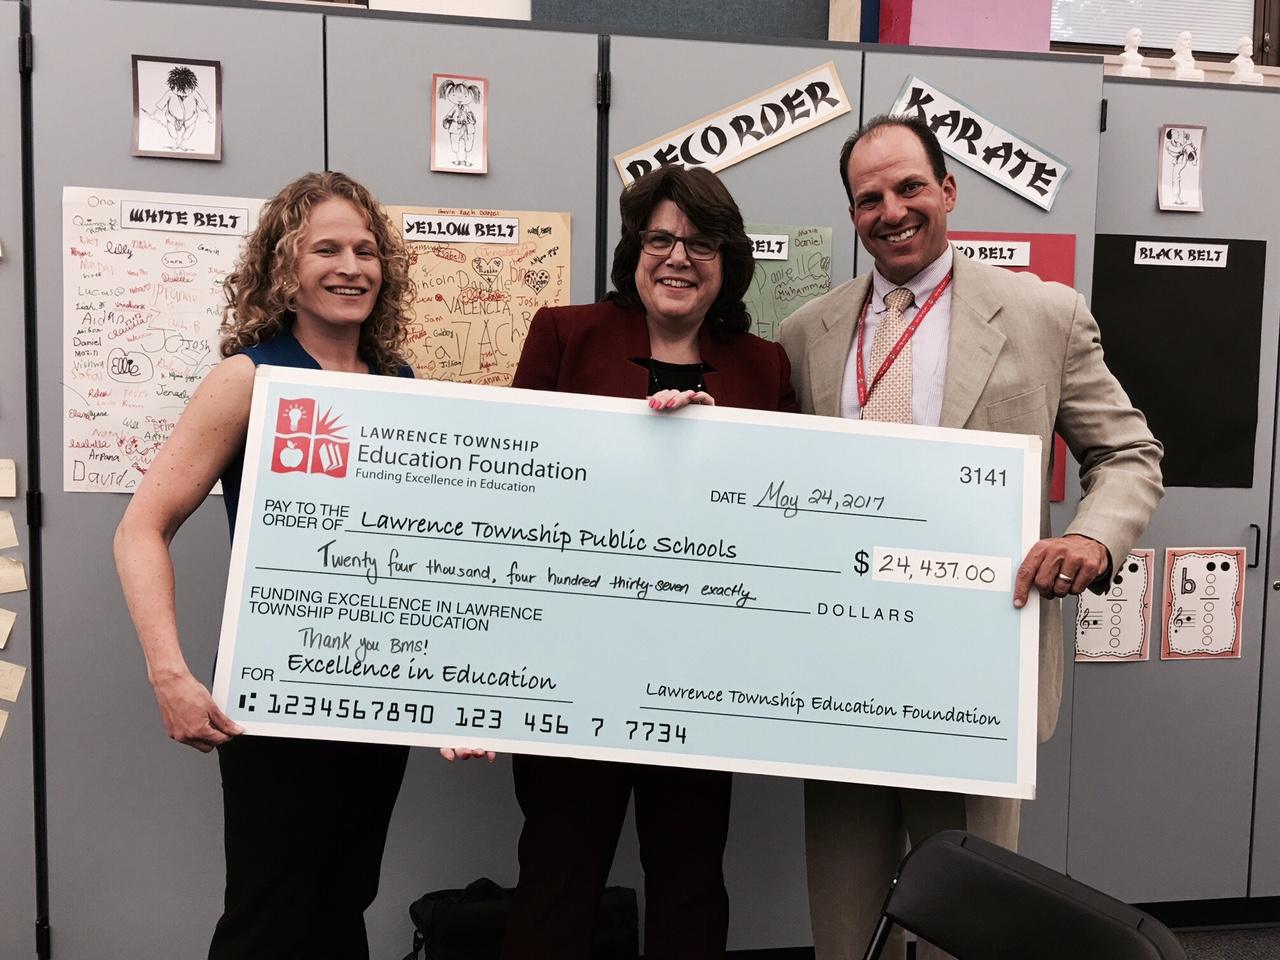 From left to Right: Karen Faiman, LTEF Executive Director; Carol Katz Connelly, LTEF Past President; Andrew Zuckerman, Assistant Superintendent for Curriculum & Instruction